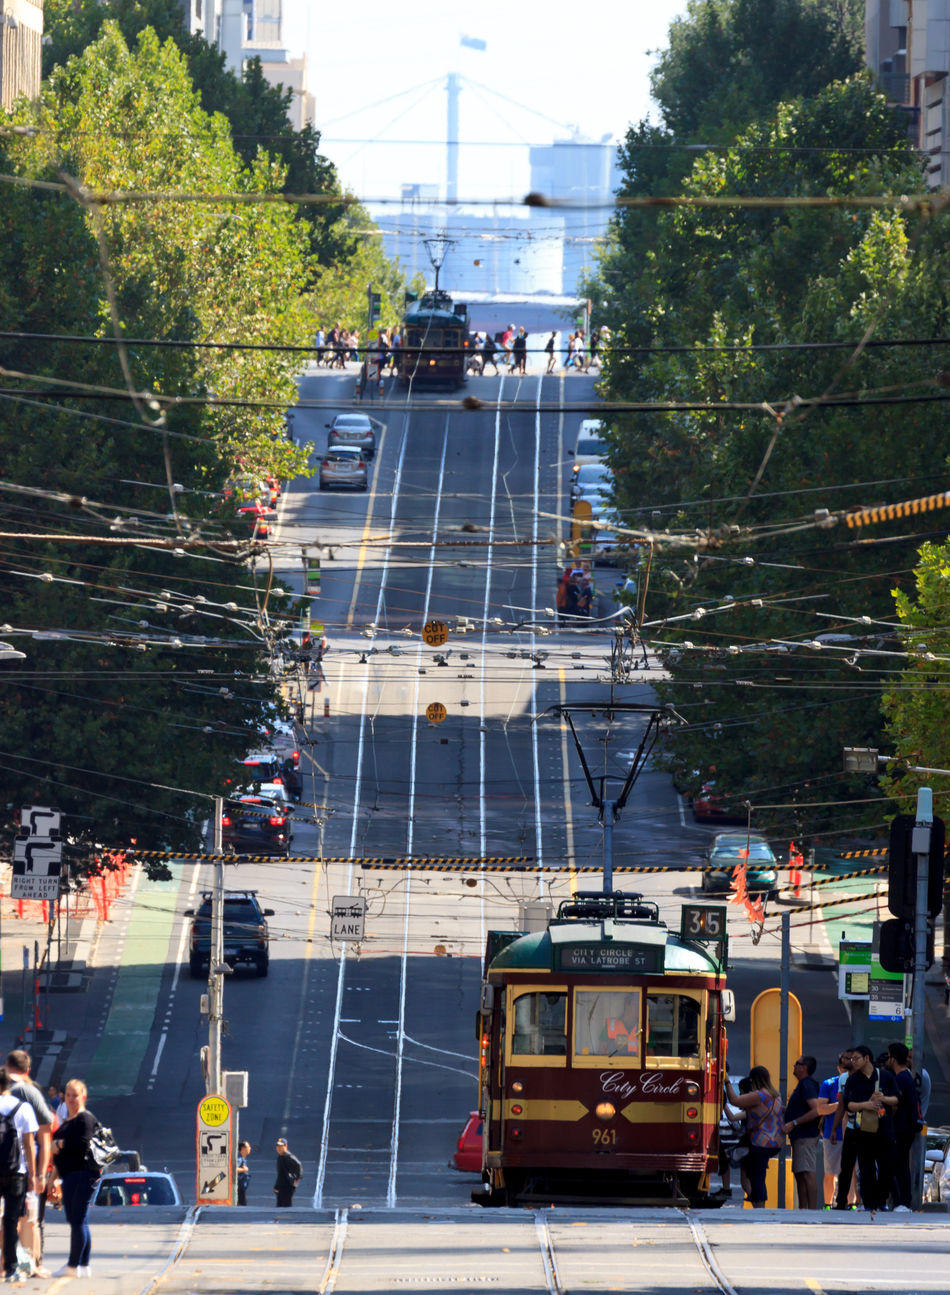 Trams coming down a hill in Melbourne Architecture Building Exterior Built Structure Cable City City Life Cityscape Day Eye4photography  EyeEm Best Shots Group Of People Land Vehicle Lifestyles Mode Of Transport Nature Outdoors People Public Transportation Real People Tram Transportation Tree